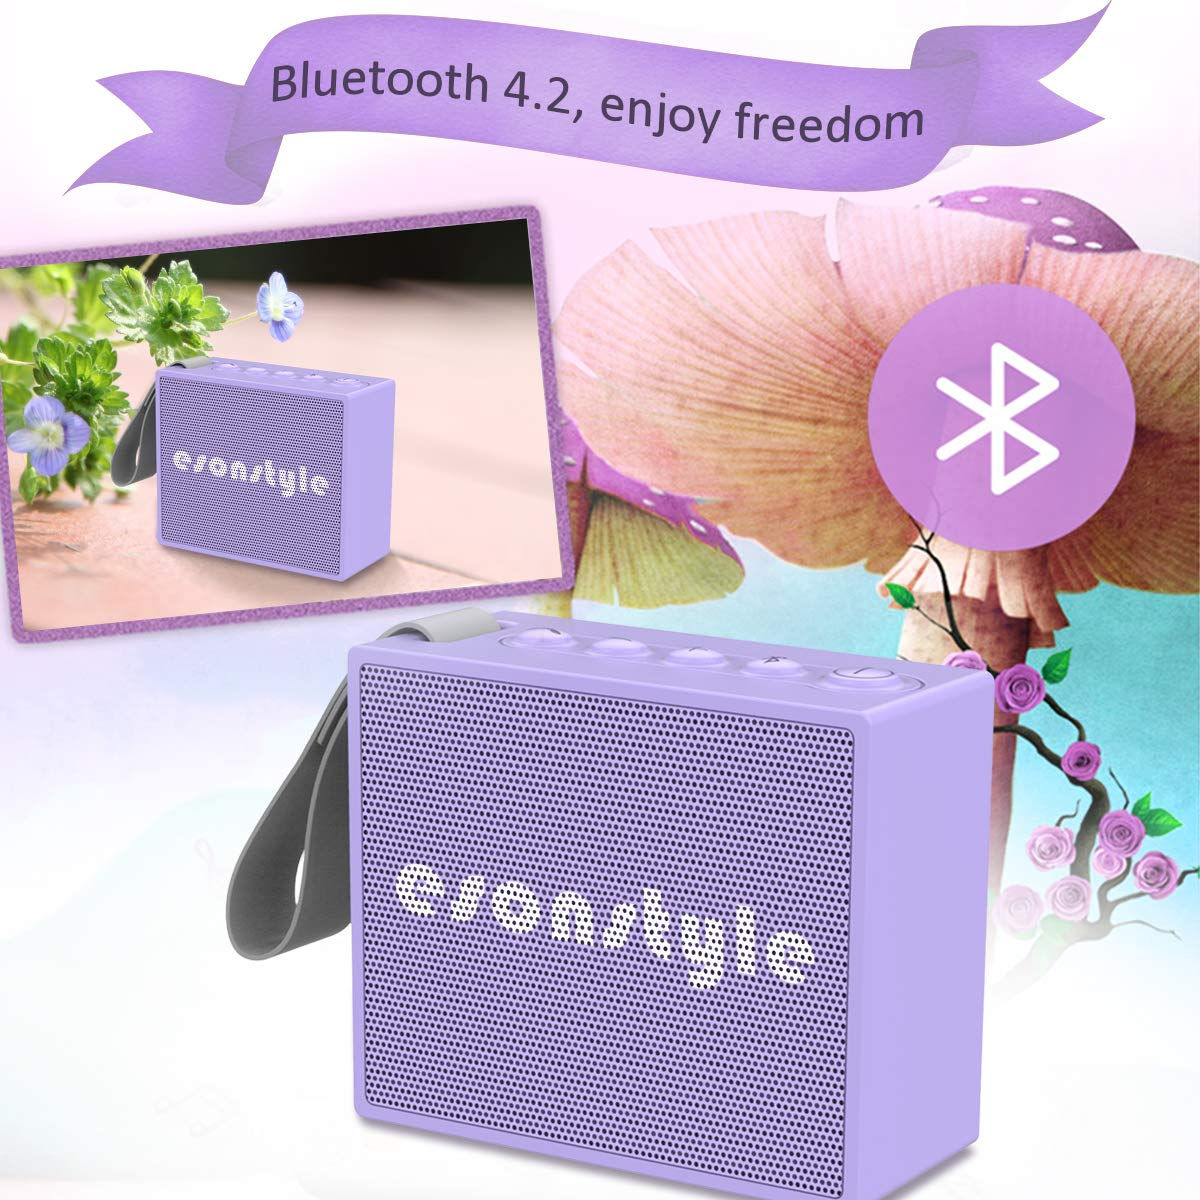 Esonstyle Waterproof IPX6 Portable Bluetooth Speaker 5W Drive Built-in Mircophone for iPhone iPod ipad All Bluetooth Devices